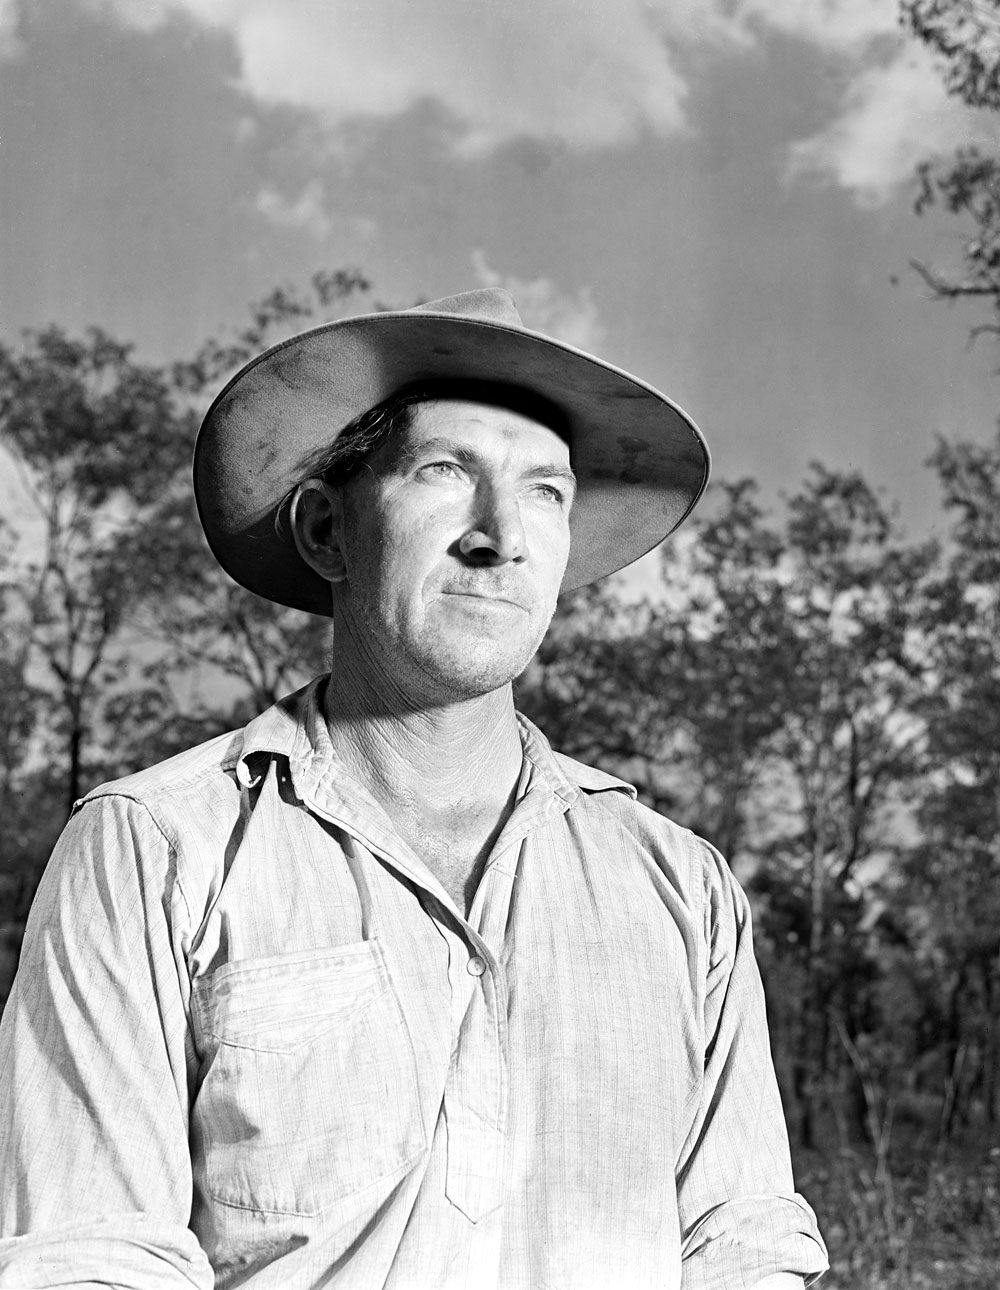 Jack White, prospector who discovered the first uranium deposit at Rum Jungle in 1949 (1955). National Archives of Australia: A1200, L19444